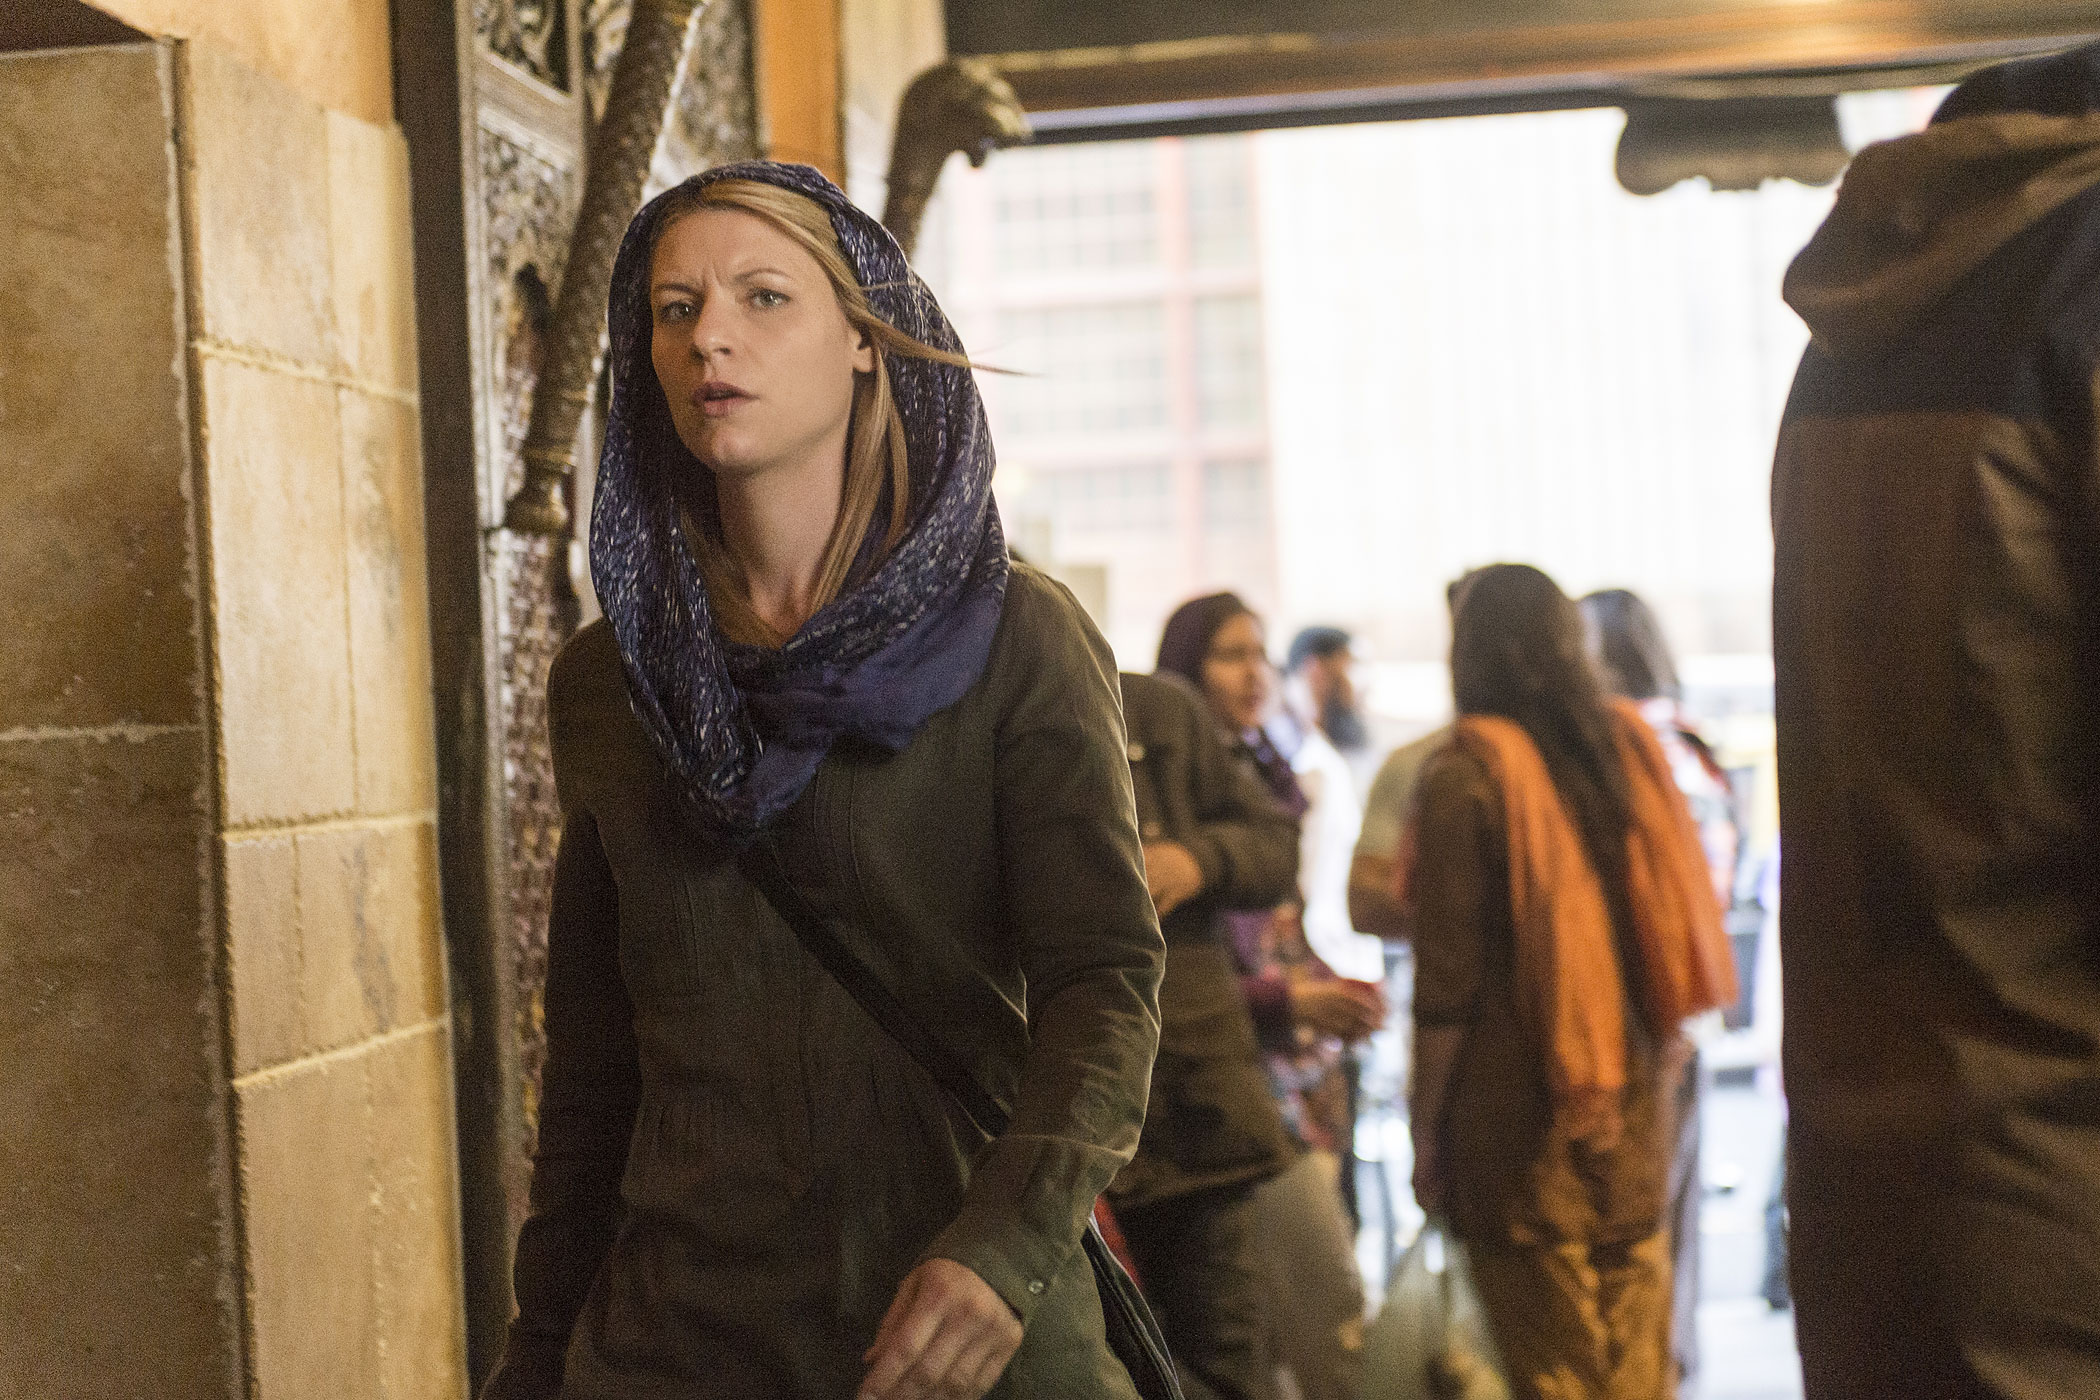 10. Homeland (Showtime) - 36,733 average users pirating worldwide per day